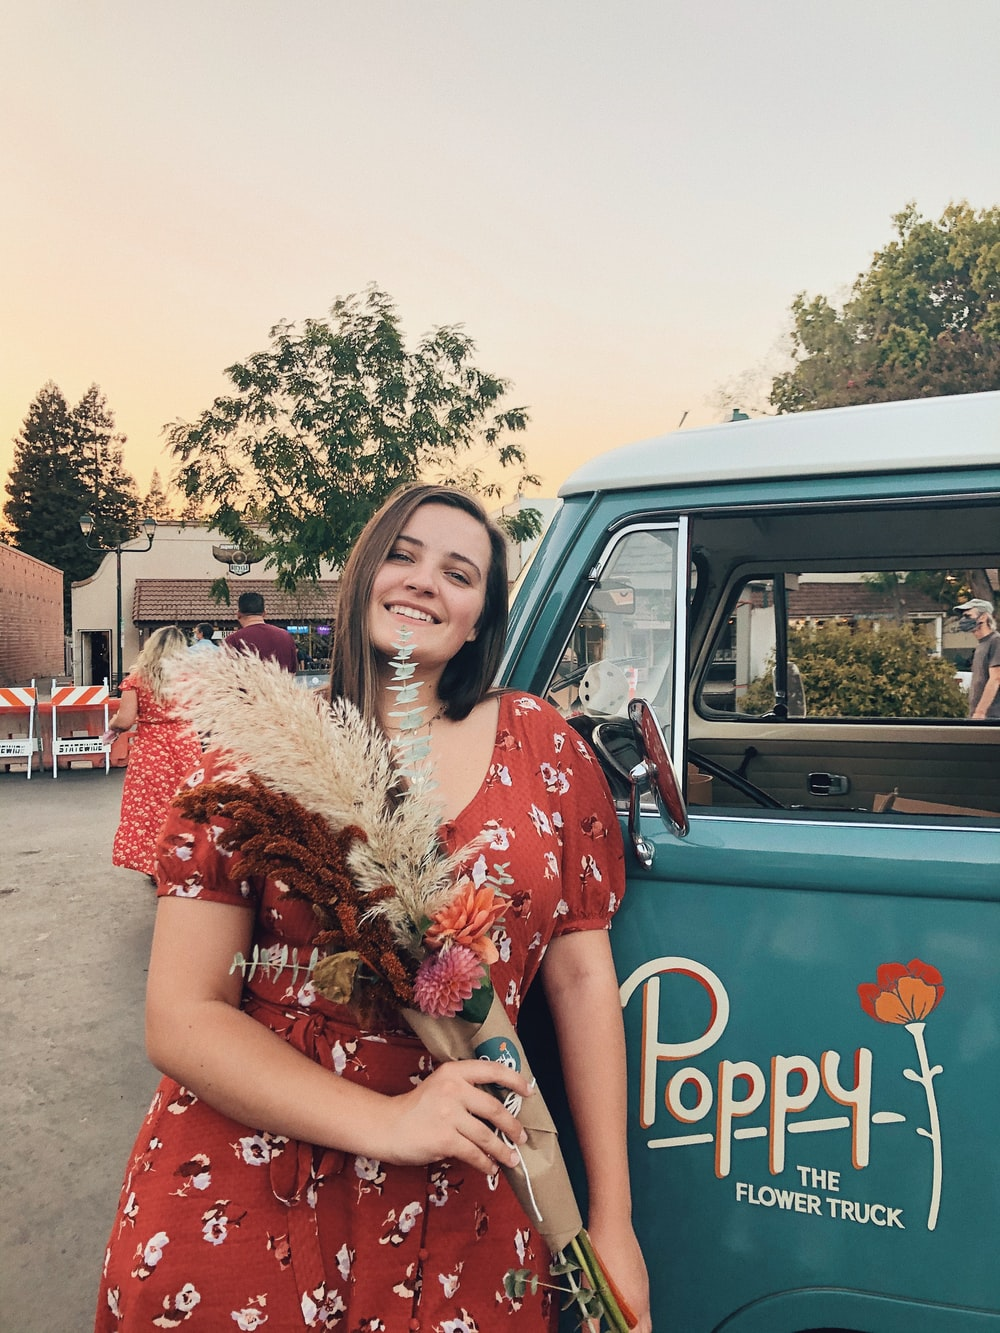 woman in red and white floral dress leaning on blue car